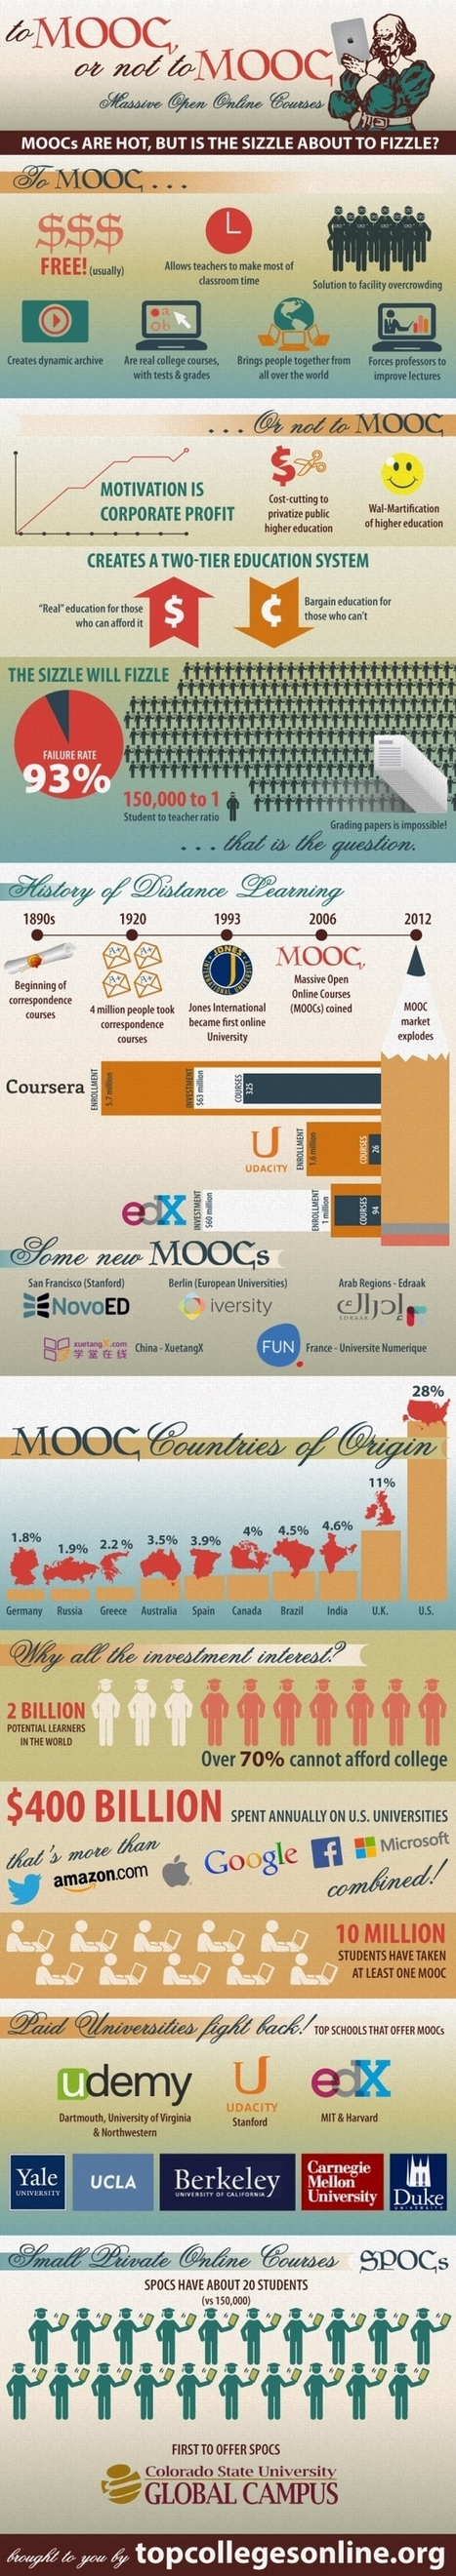 Are MOOCs Still Going Strong? | @iSchoolLeader Magazine | Scoop.it